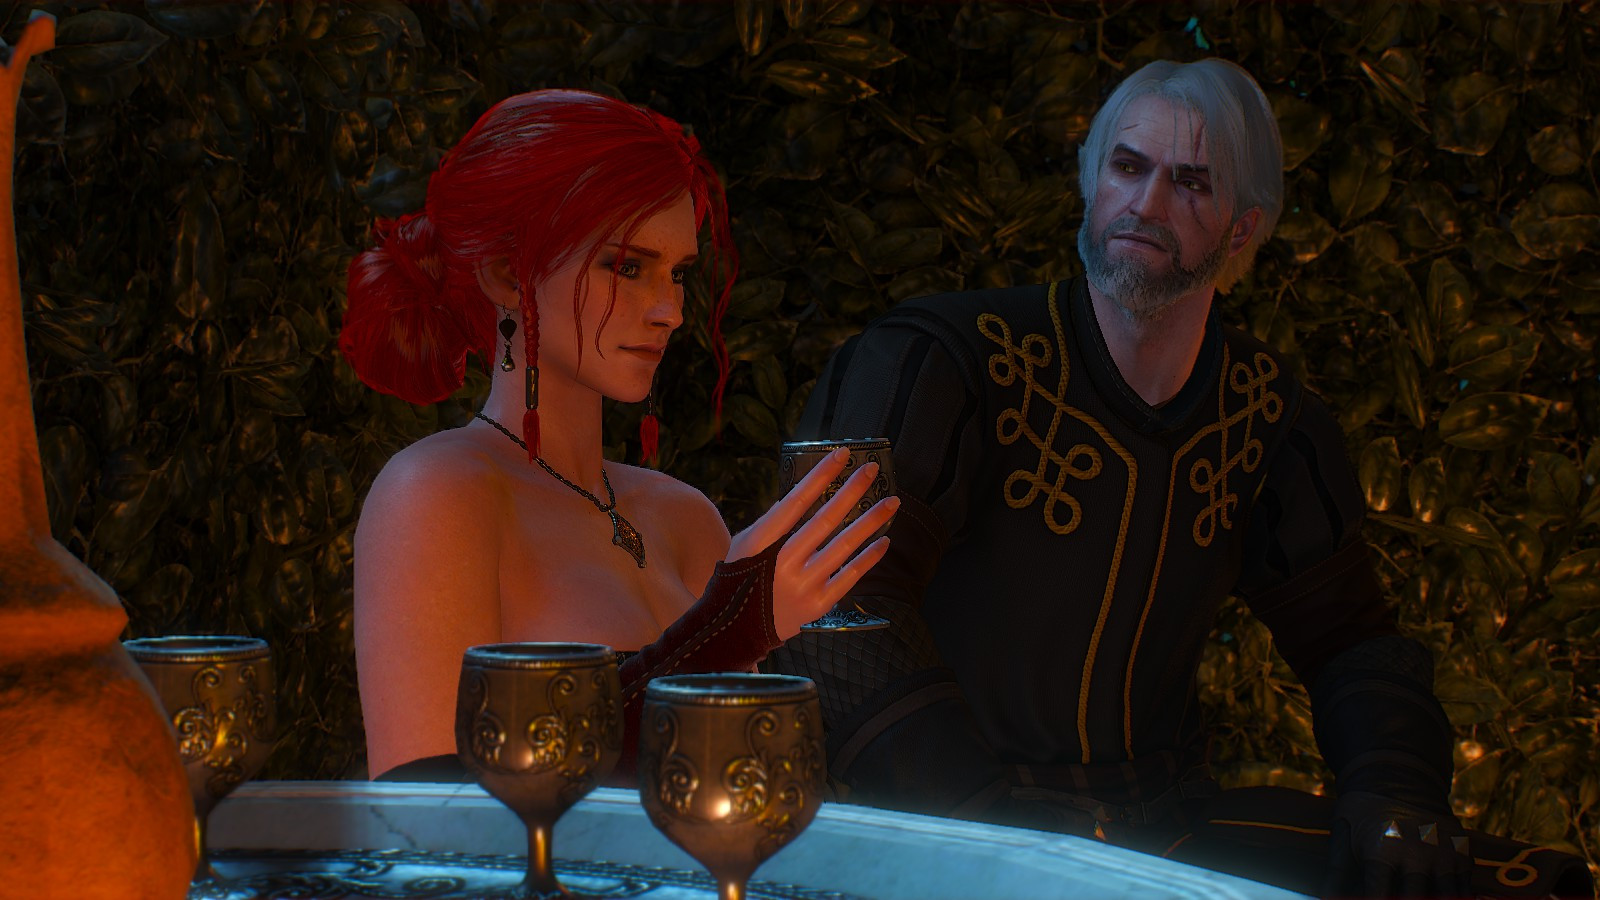 20180512180402_1.jpg - Witcher 3: Wild Hunt, the